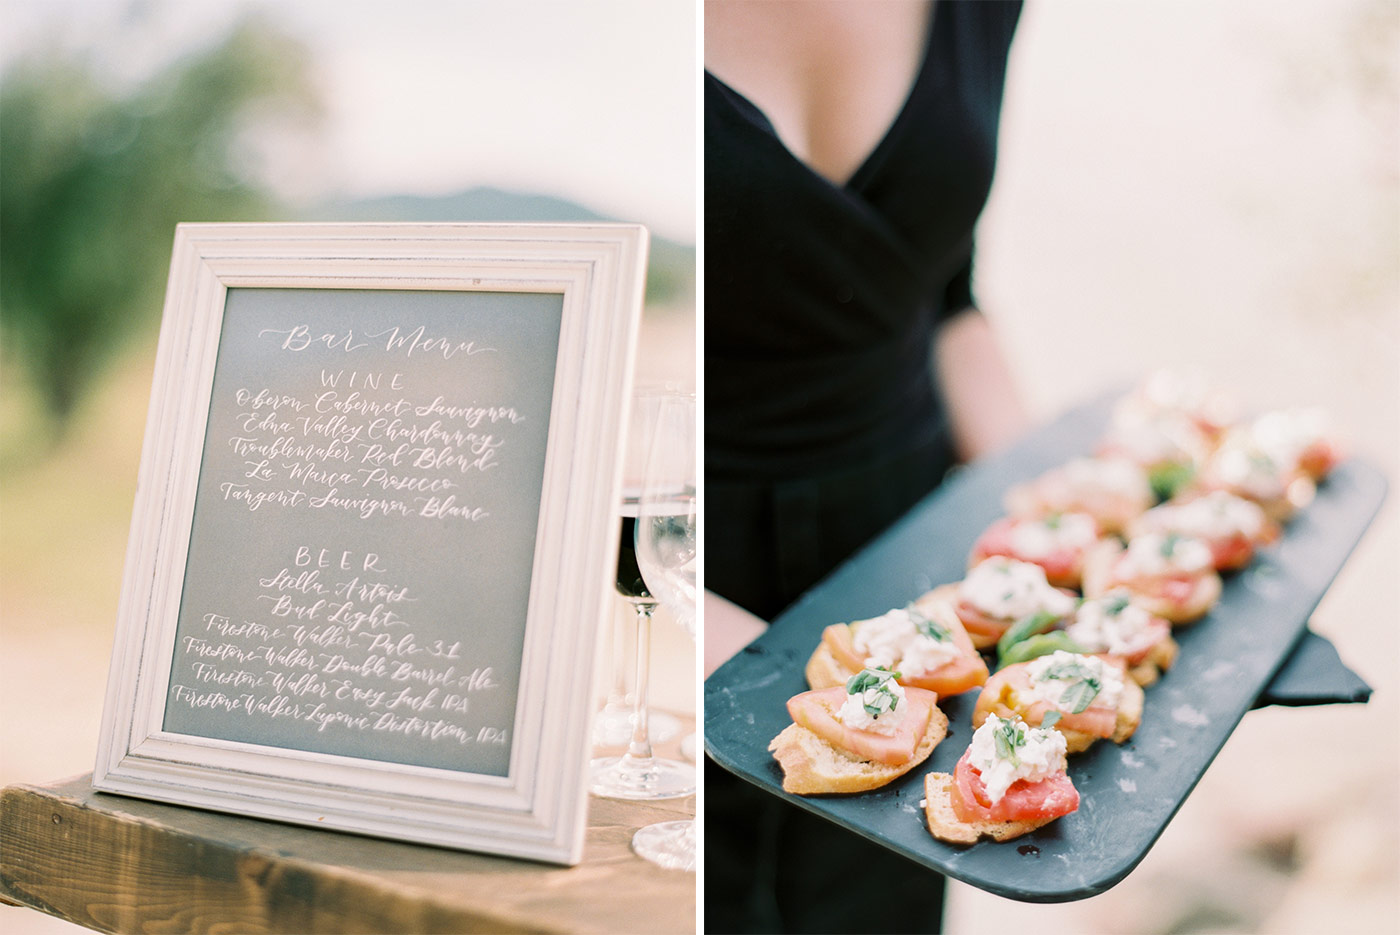 Bar Menu Calligraphed by Sophia Loves Letters and Appetizers by Field to Table Events